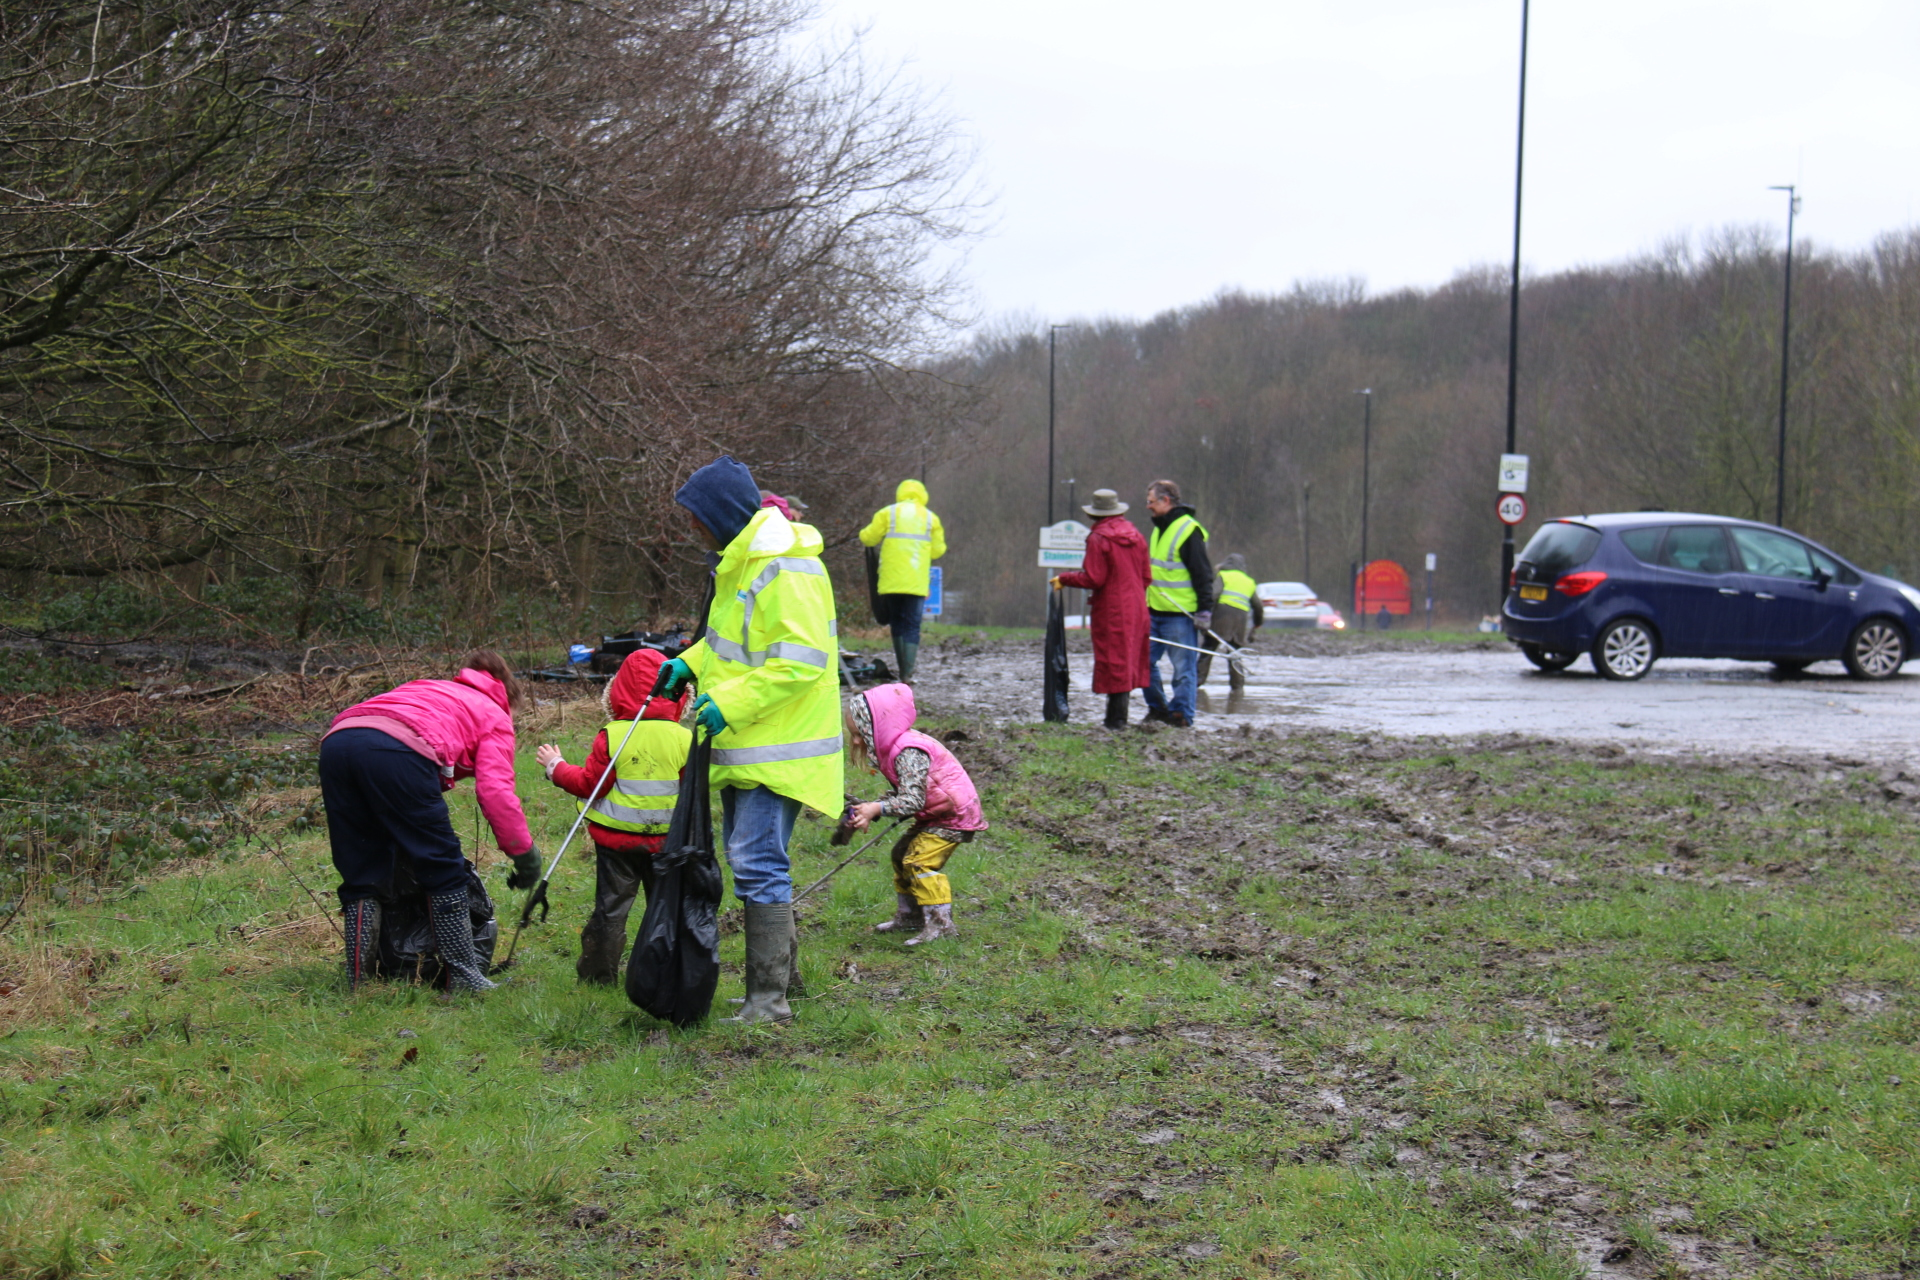 Community Action, Litter Picking Activism in March